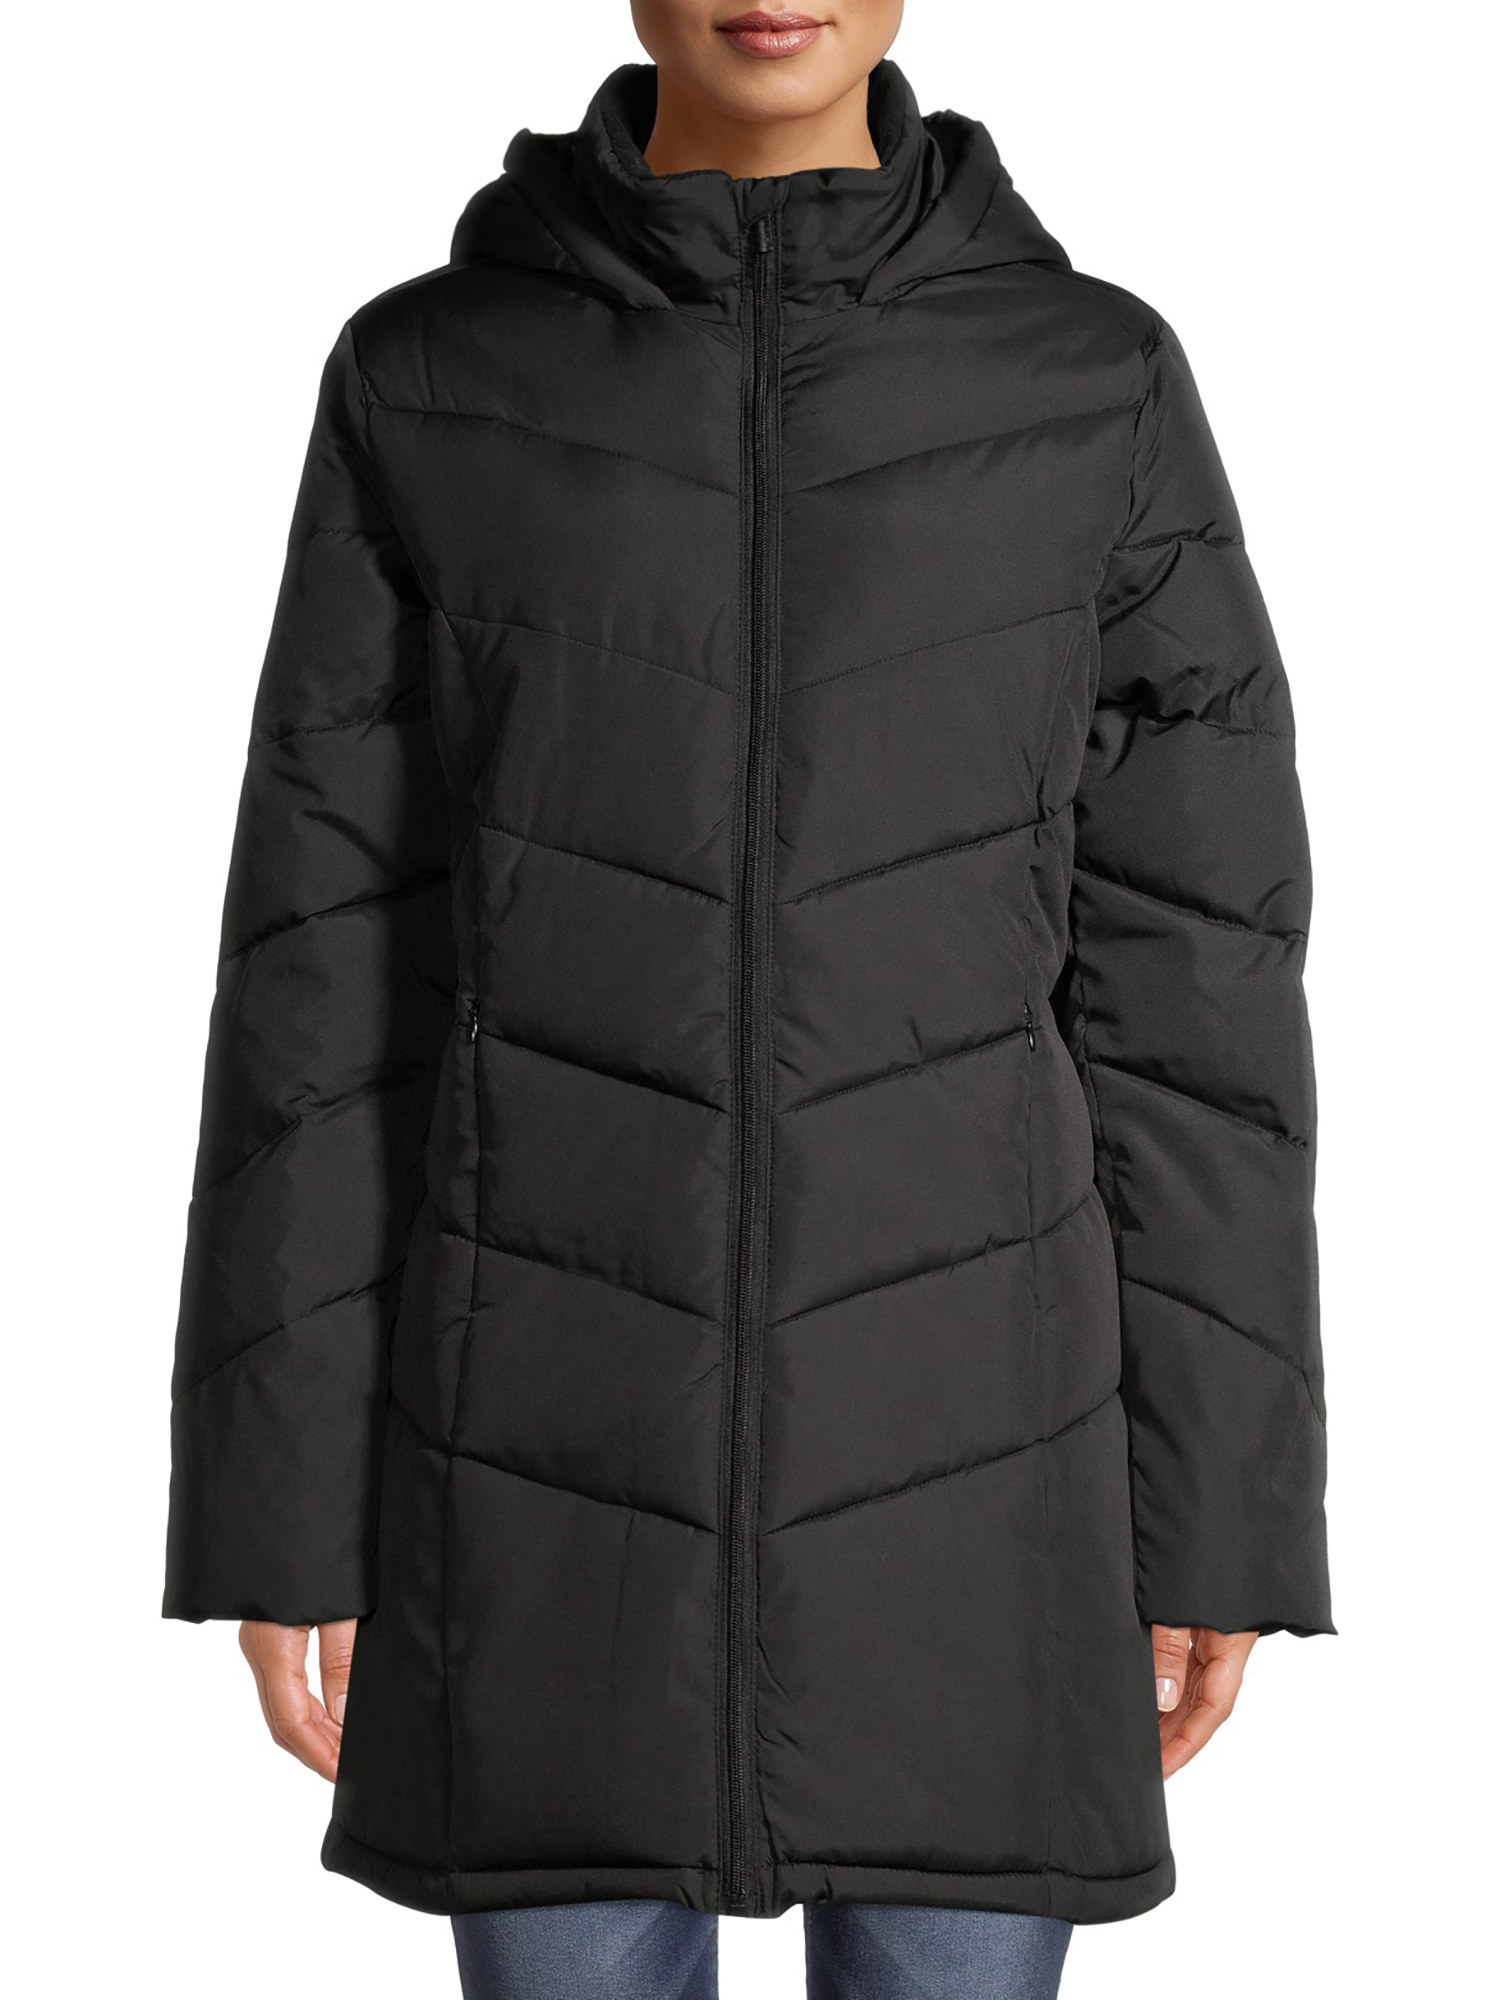 person wearing black puffer coat with jeans